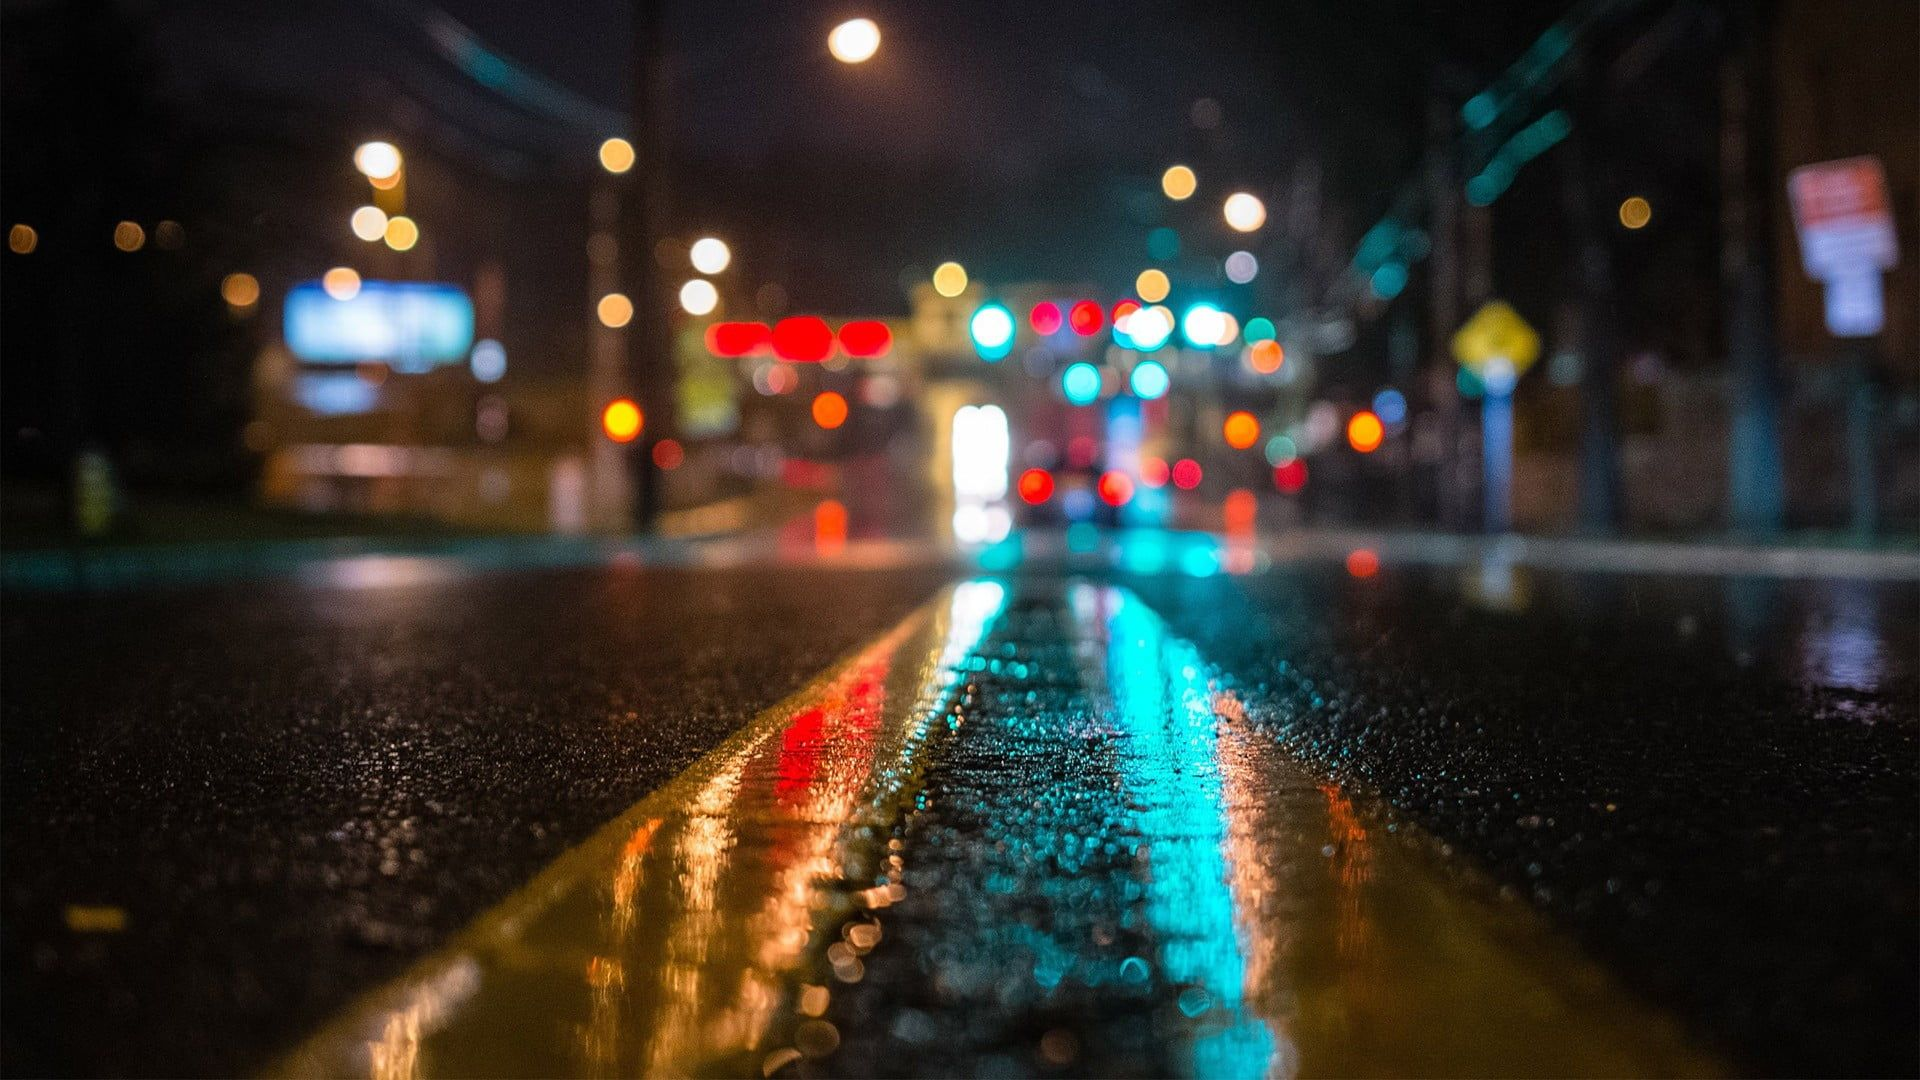 Concrete Road Gray Concrete Pavement Street Macro Road Night Traffic Lights 1080p Wallpaper Planos De Fundo Tumblr Plano De Fundo Pc Foto Tumblr Na Rua